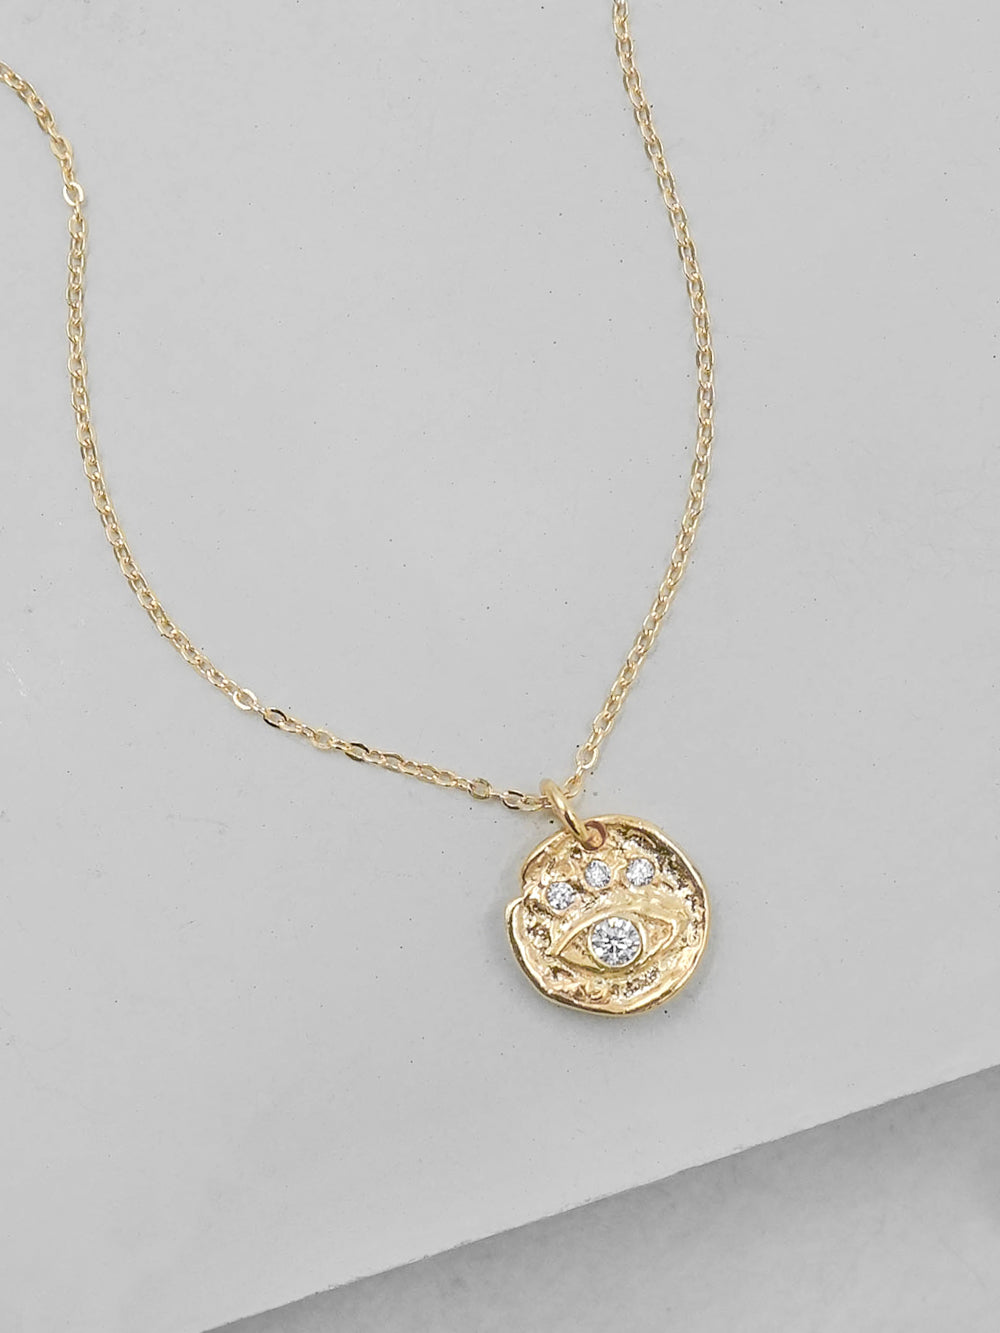 Vermeil evil Eye Charm Gold Necklace by The Faint Hearted Jewelry